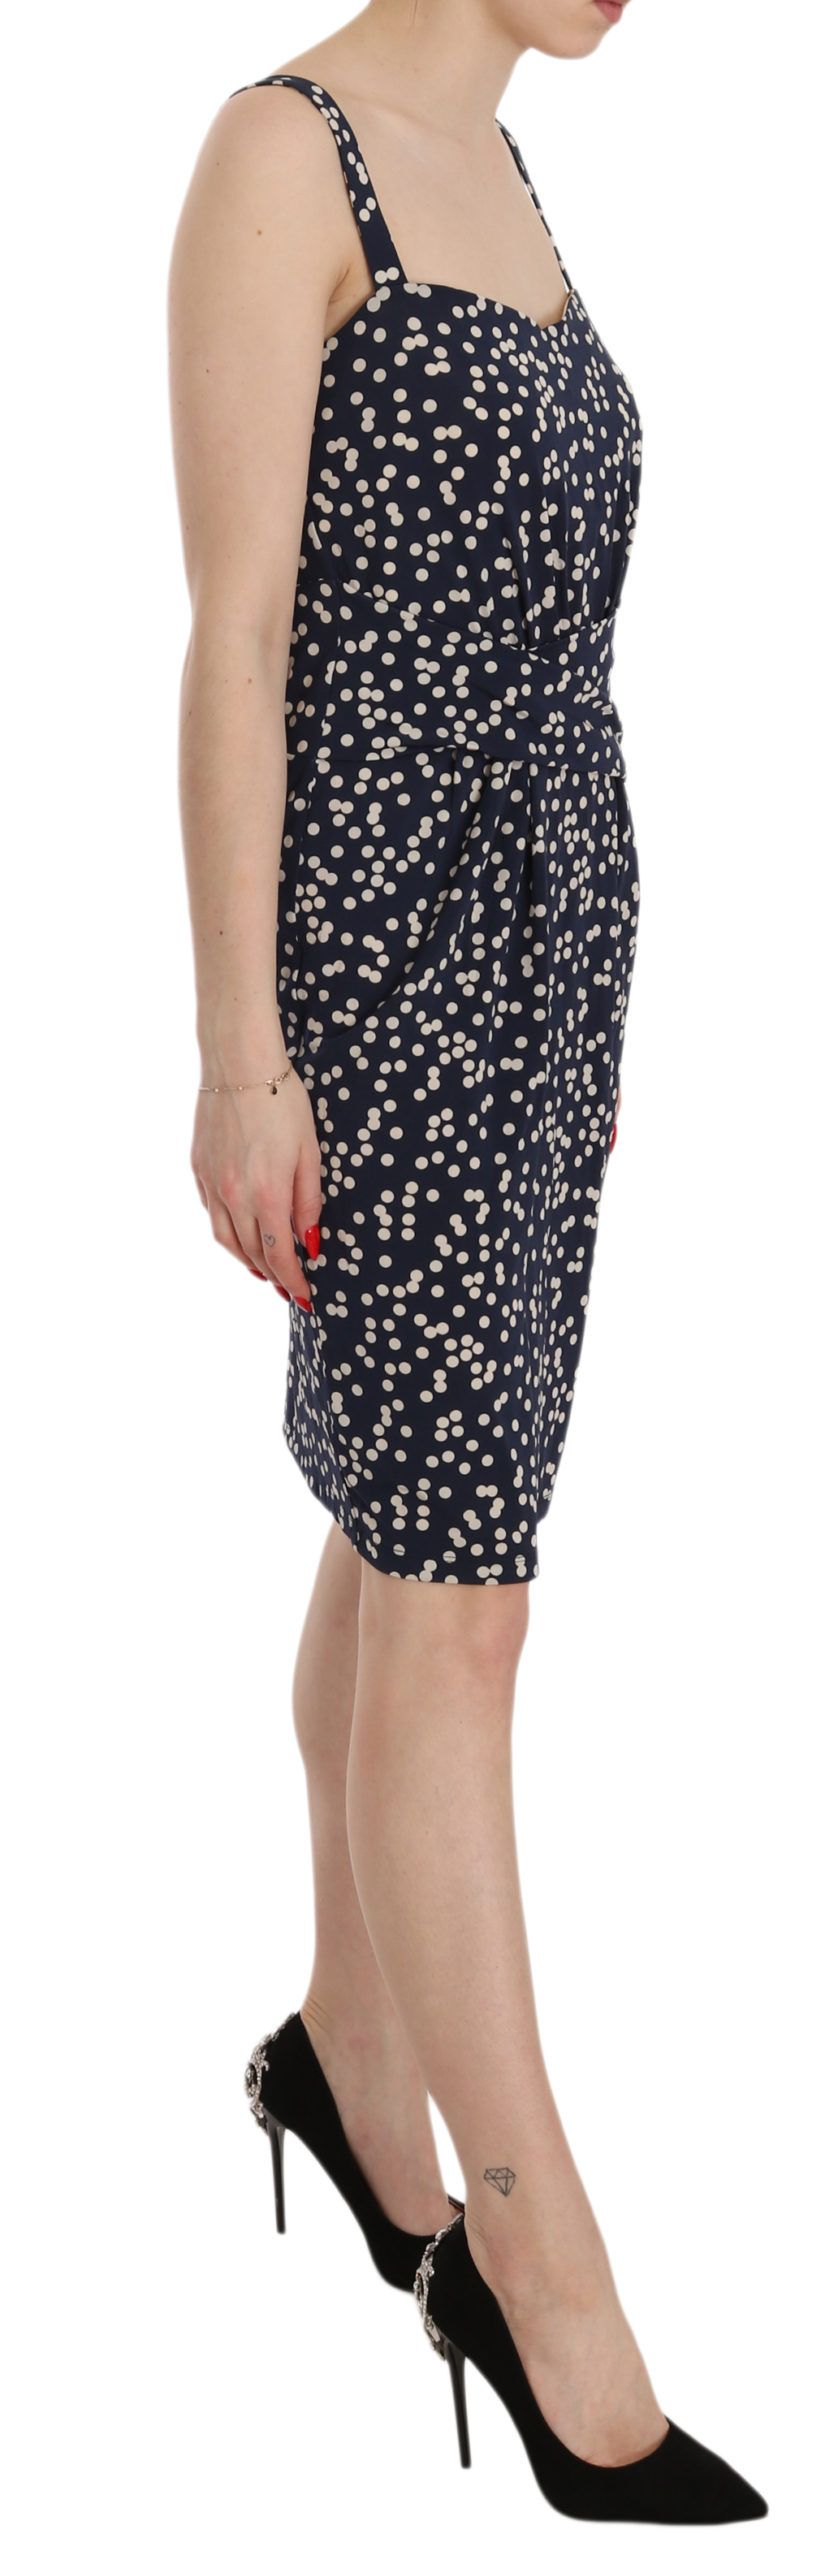 Liu Jo Blue Dotted Spaghetti Strap Sheath Knee Dress